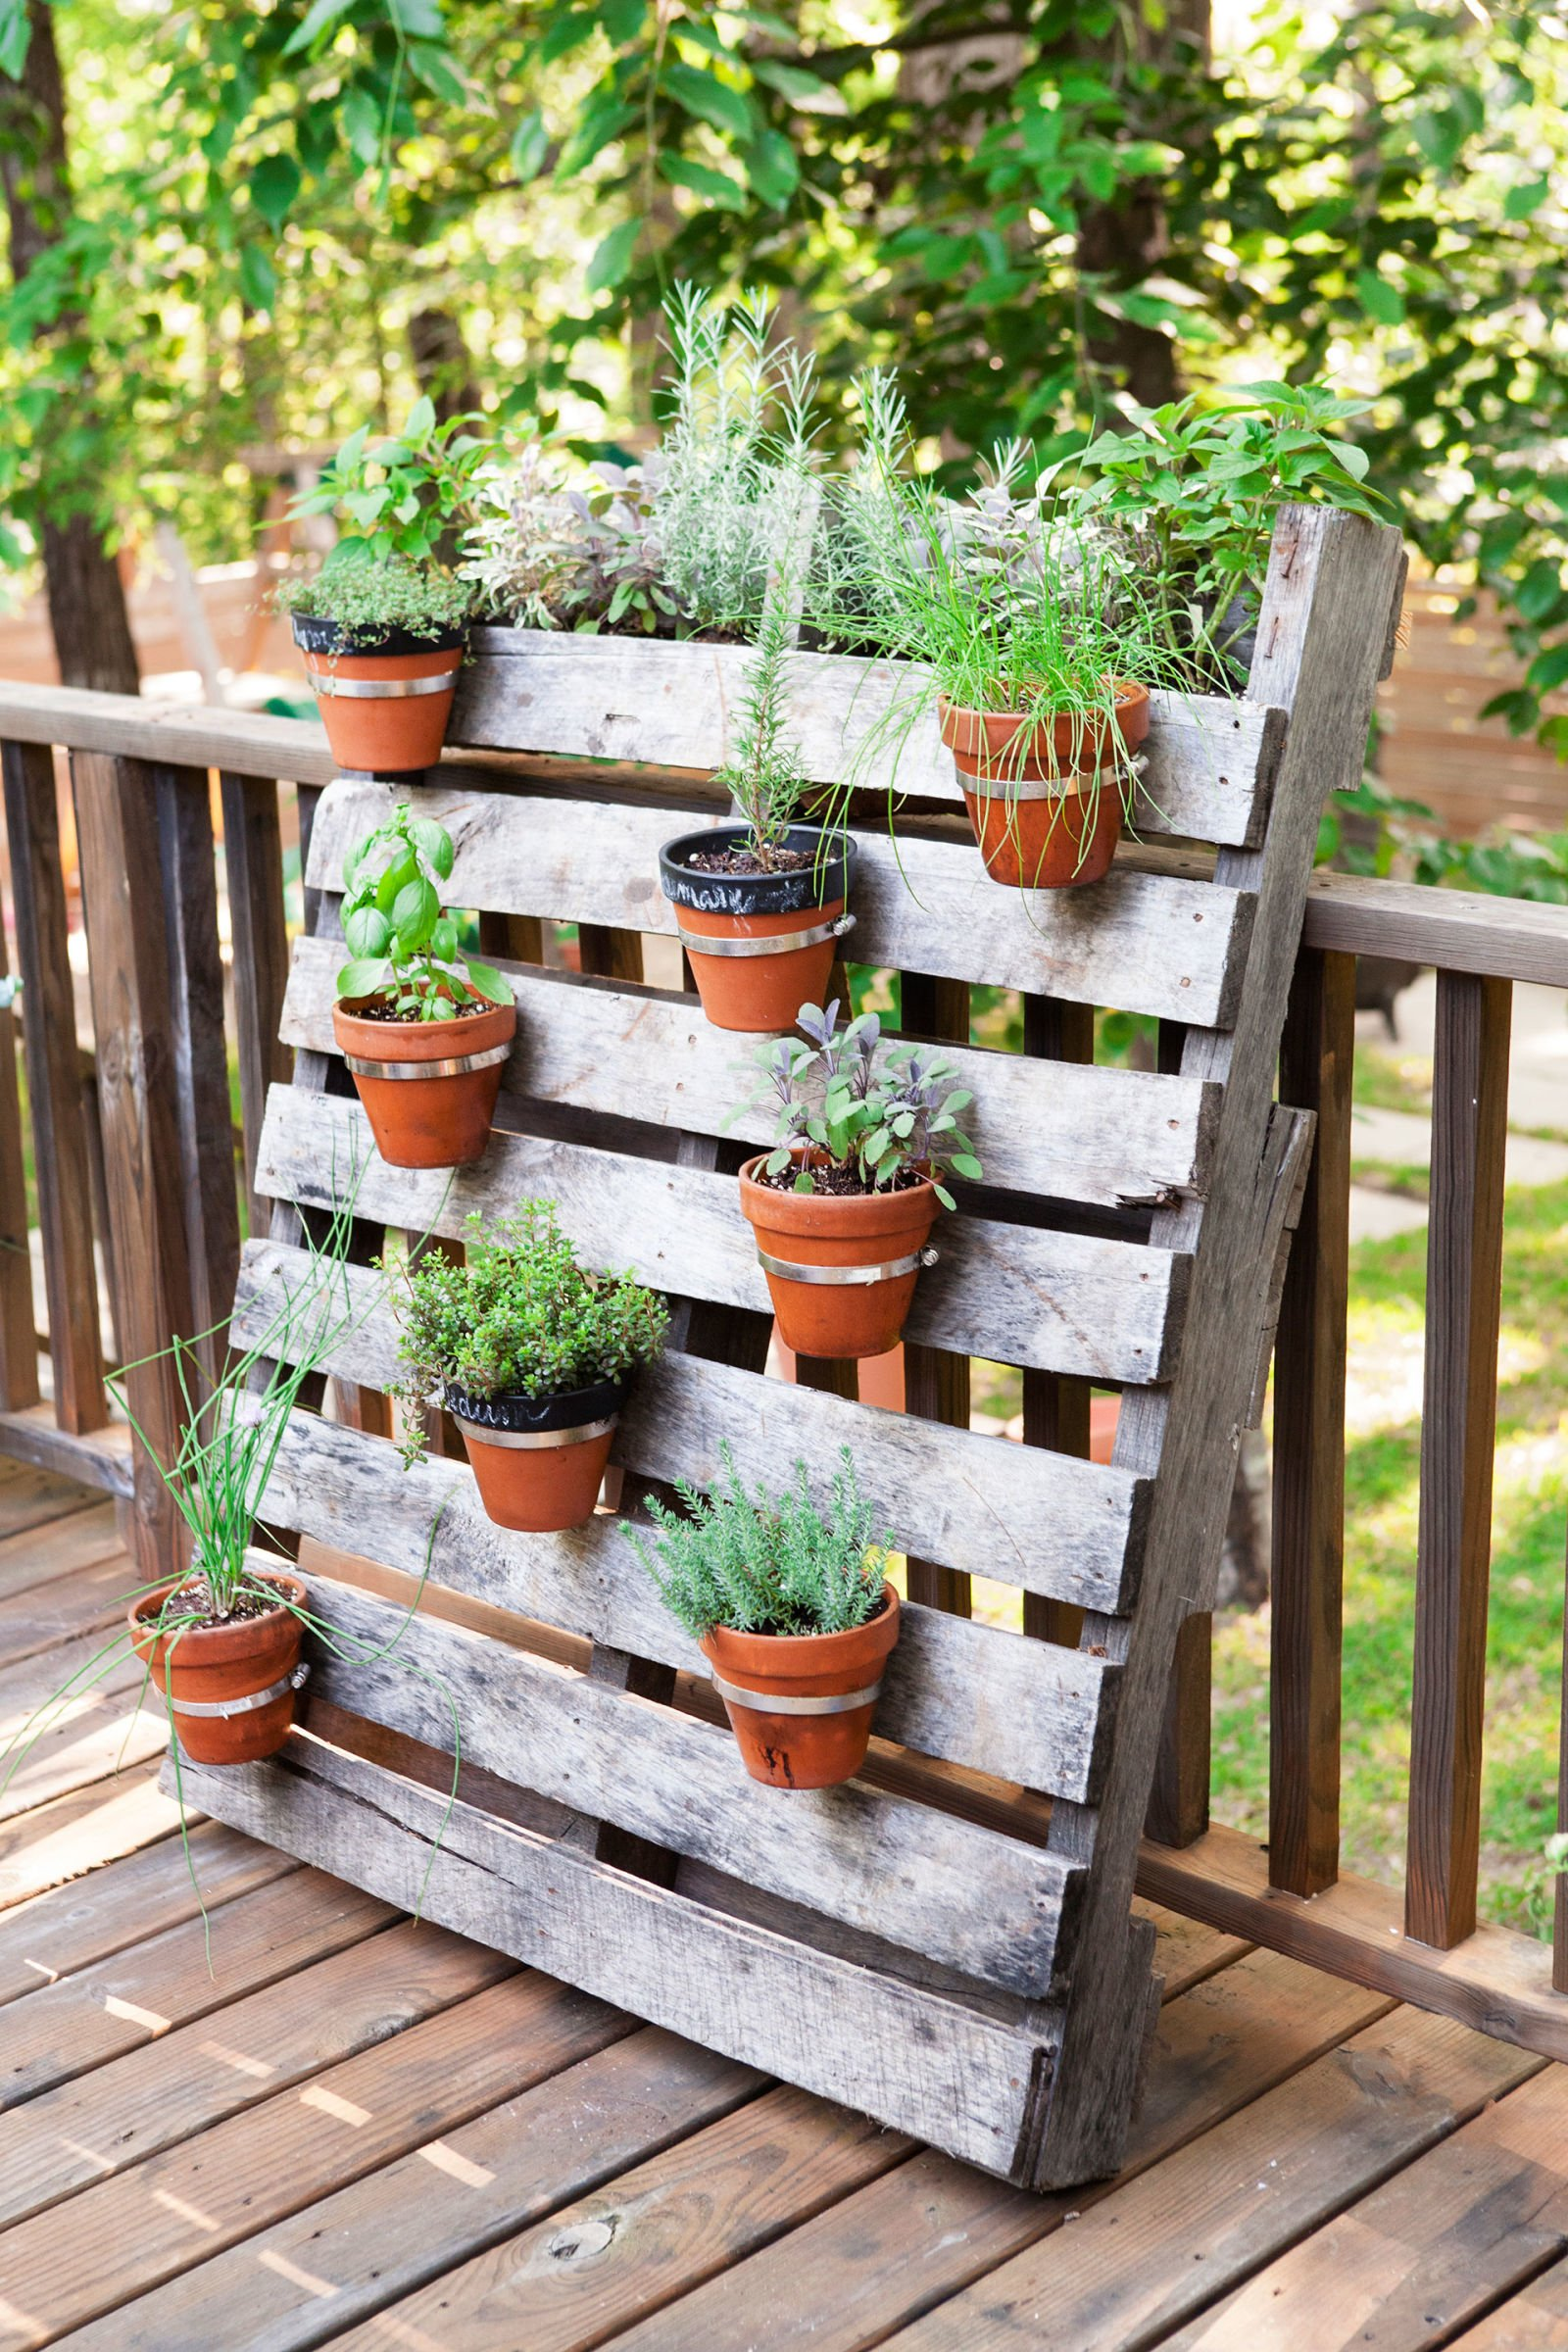 10 Diy Wood Pallet Projects You Should Try This Summer